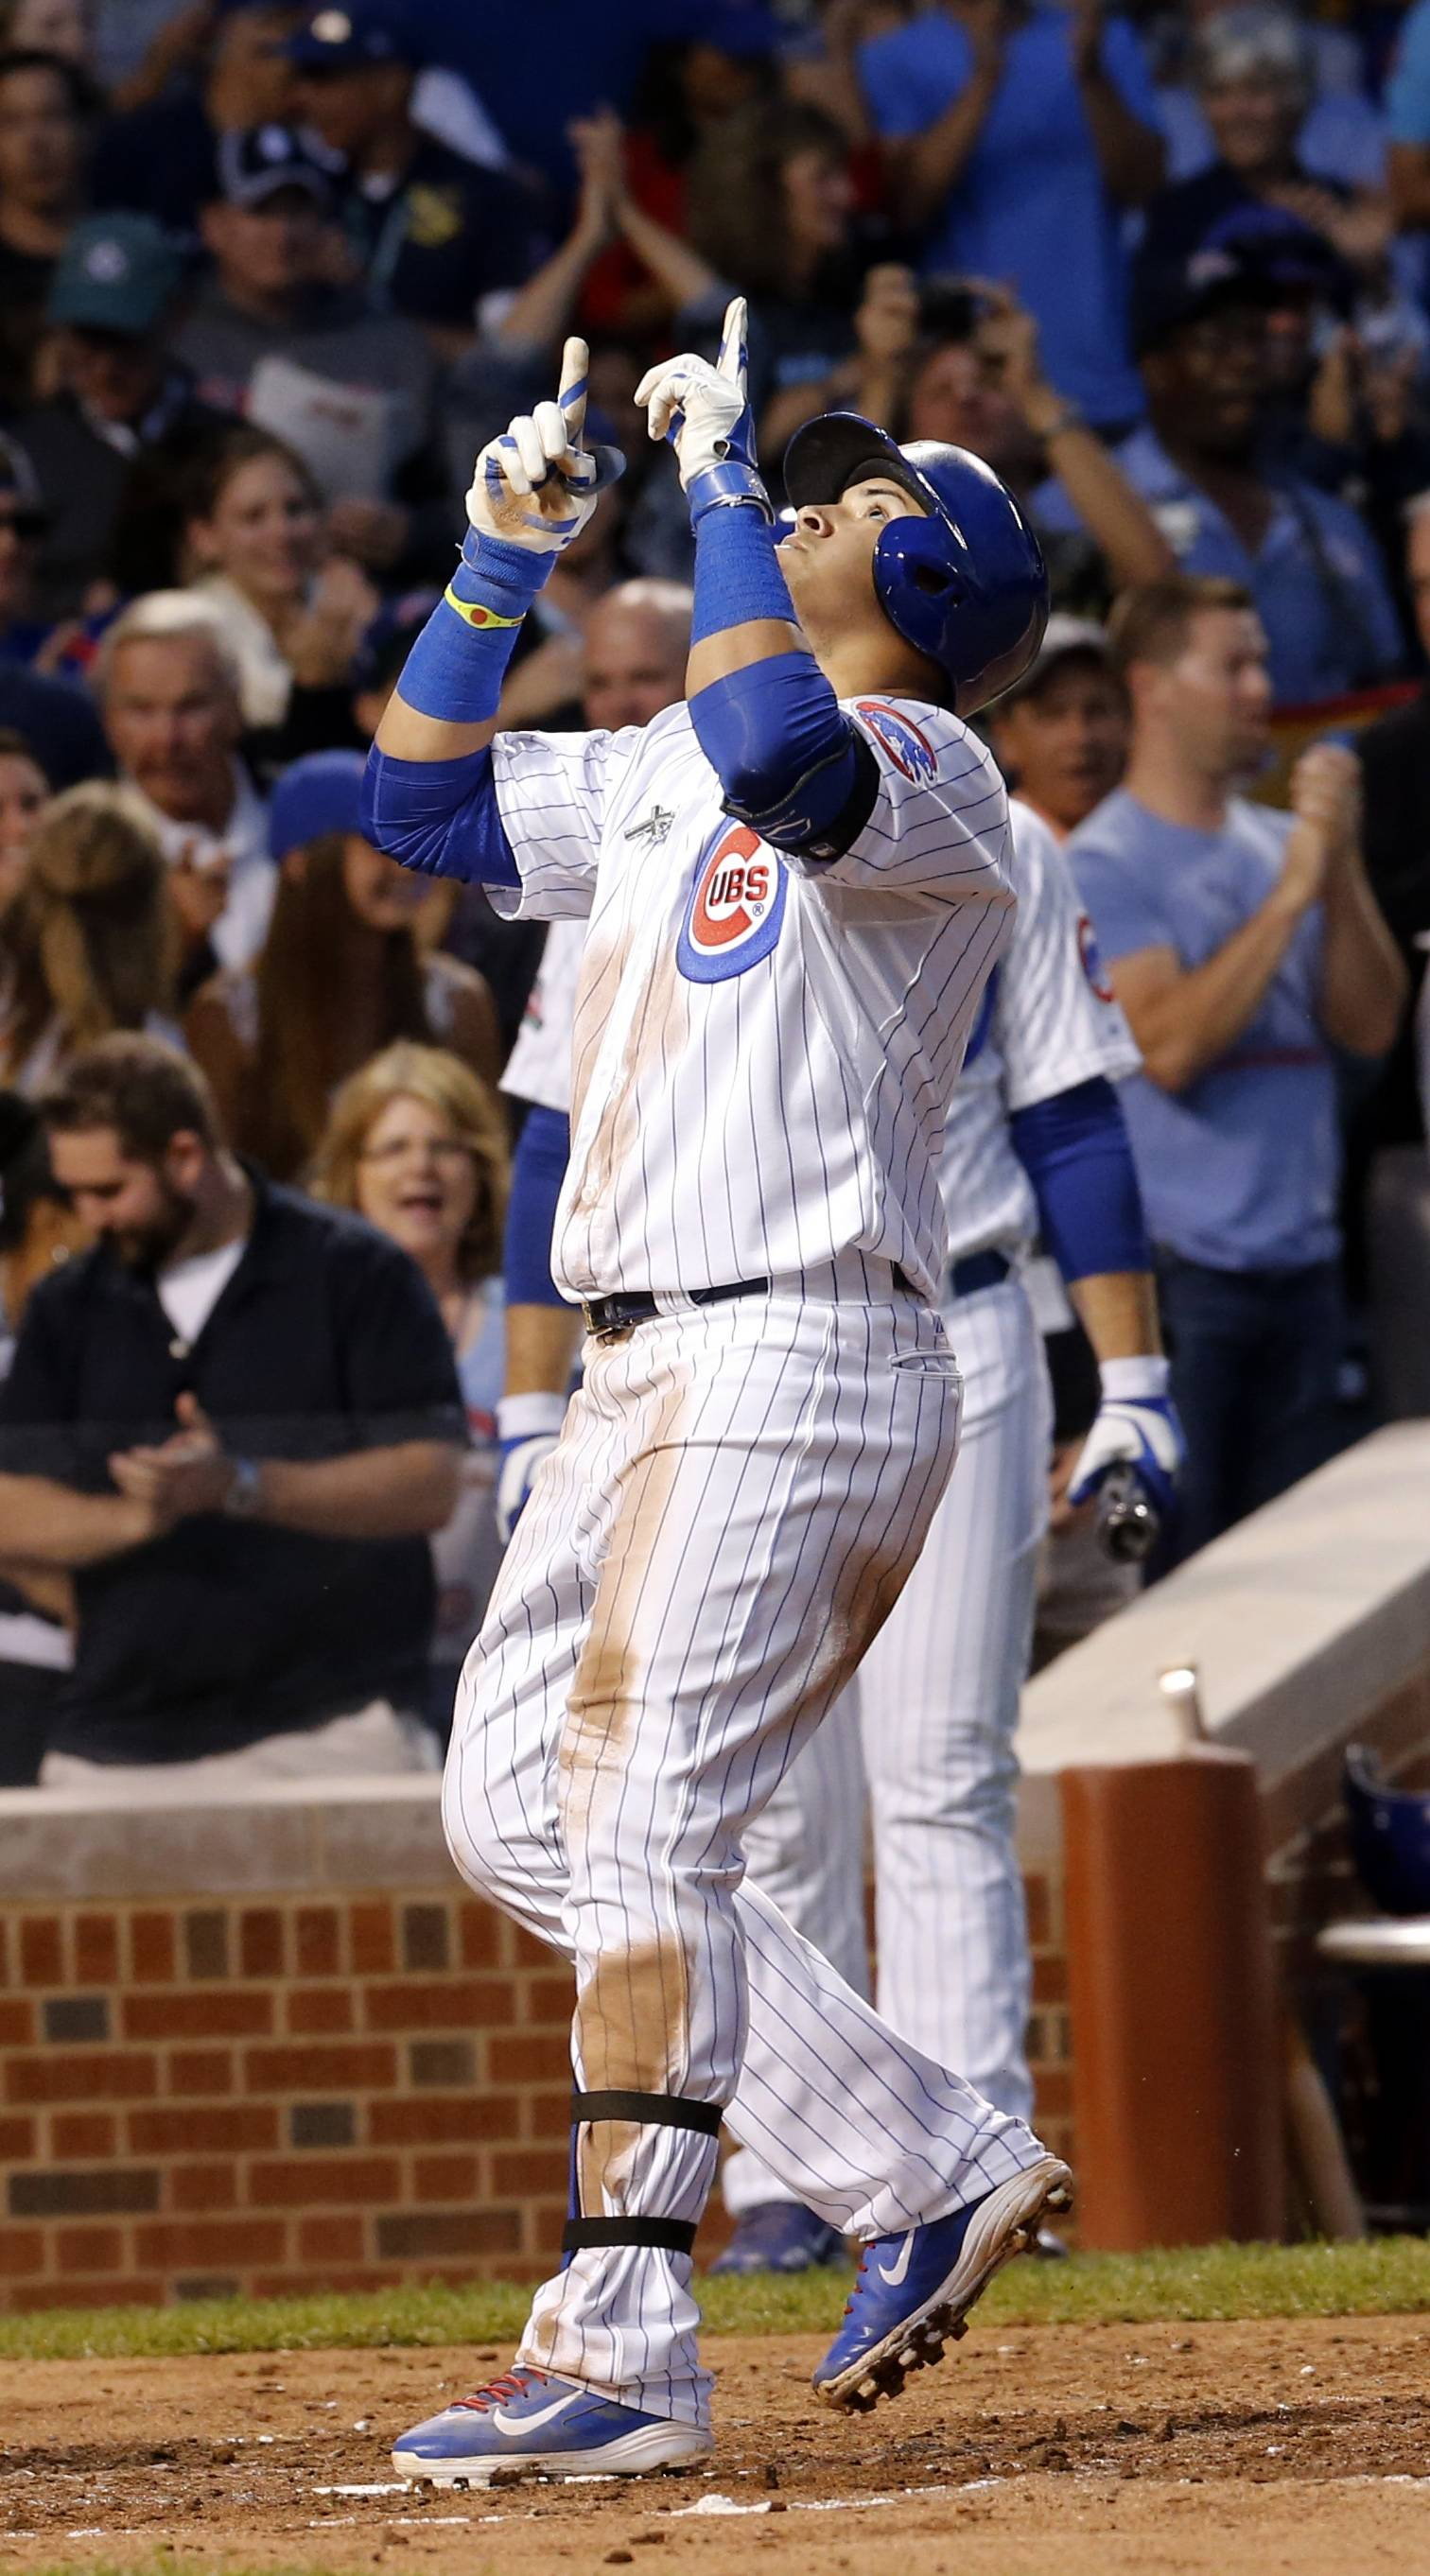 Cubs' Baez shows some Wrigley power